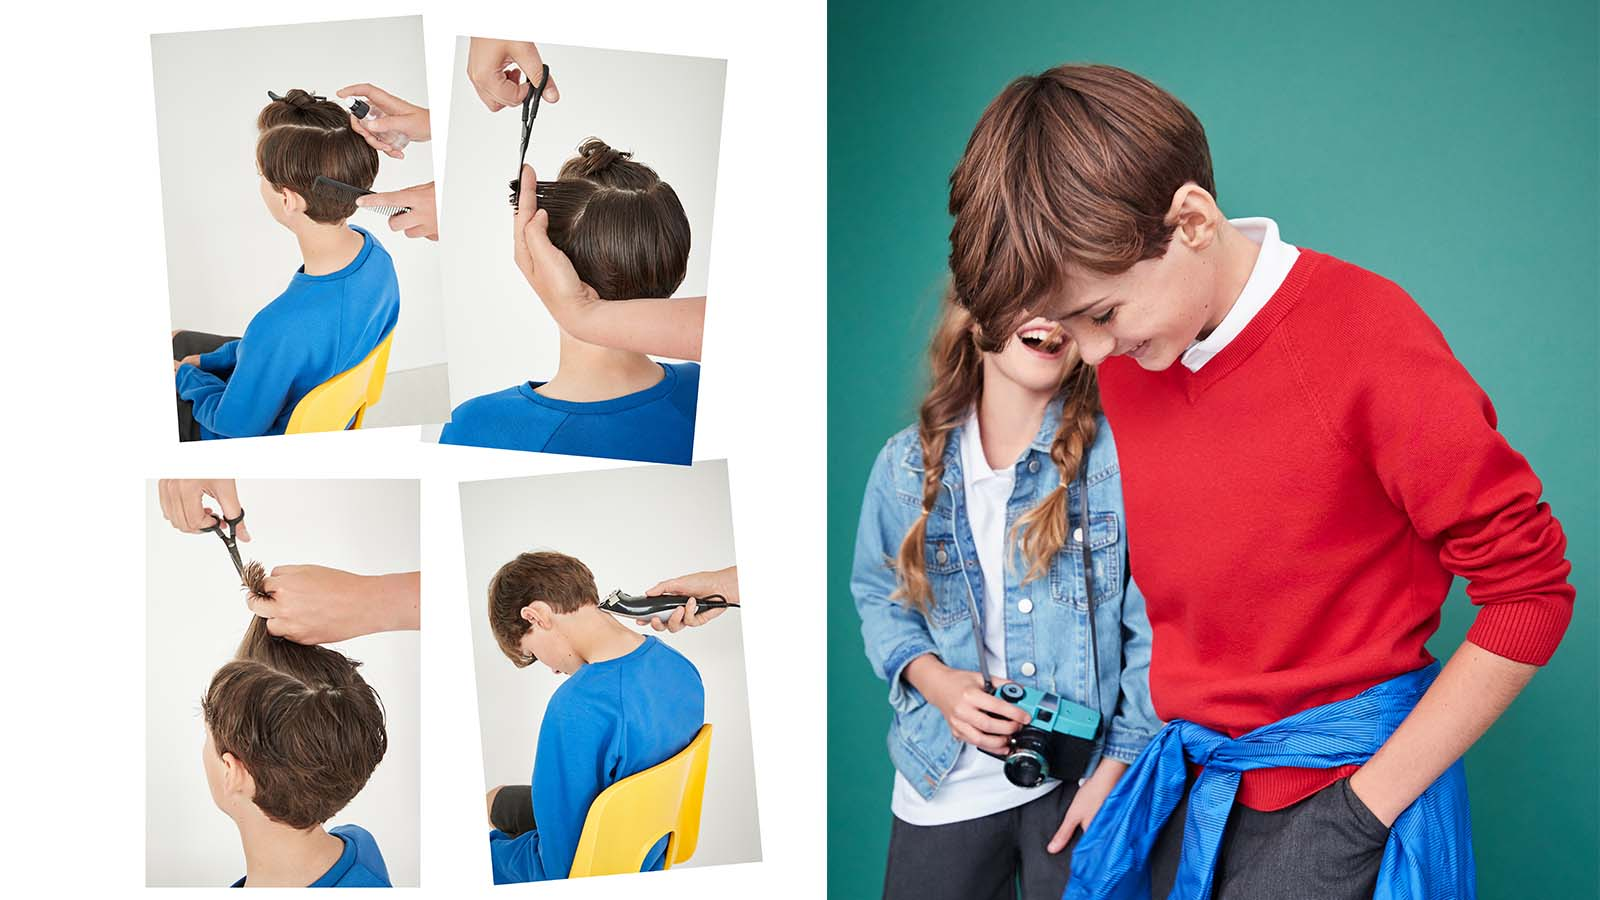 Boy getting hair cut wearing Next schoolwear